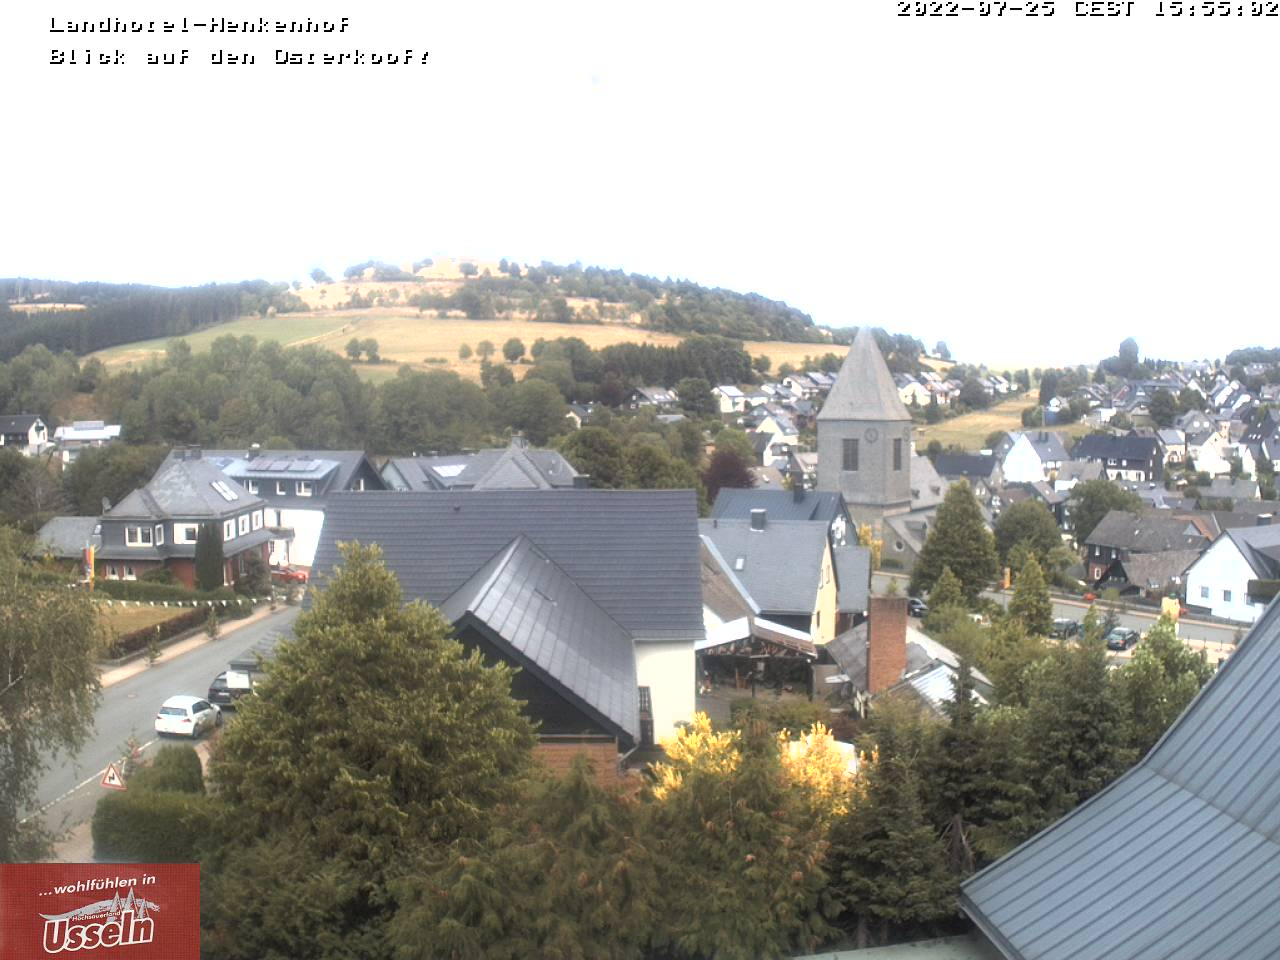 Webcam Willingen - Usseln Ortsmitte